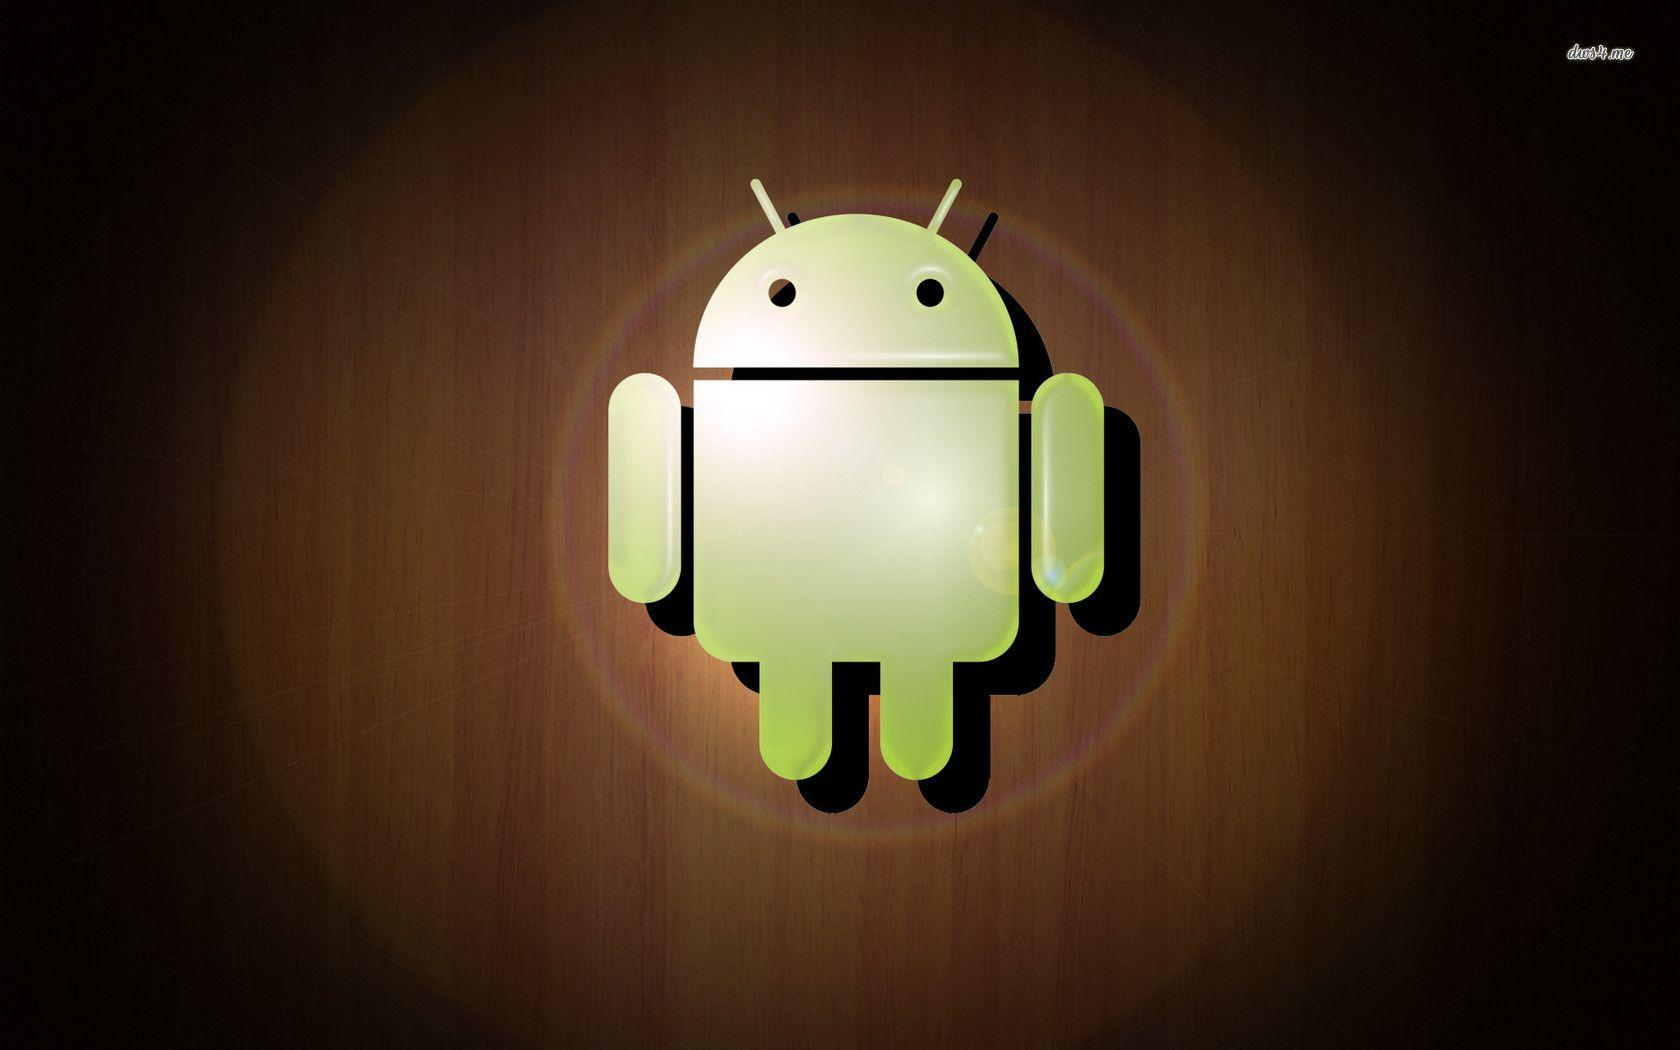 Android logo on wooden texture wallpaper - Computer wallpapers - #